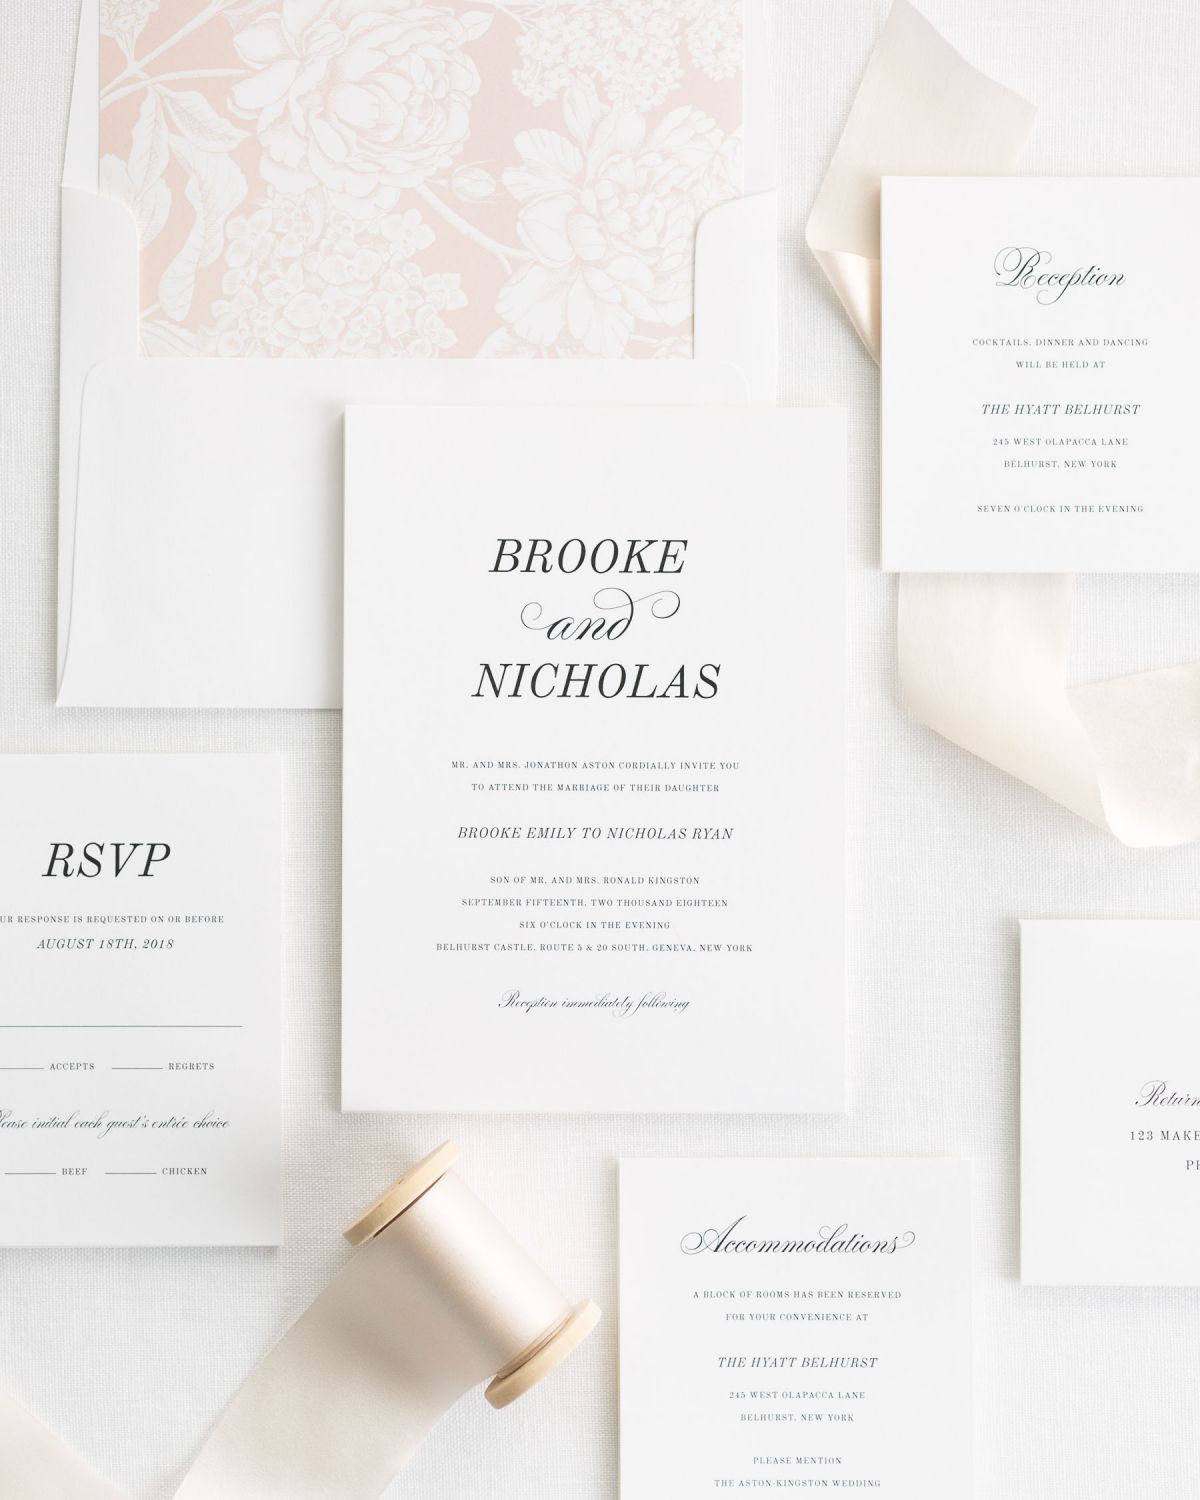 cashmere ribbon wedding invitations with a rose gold hydrangea liner